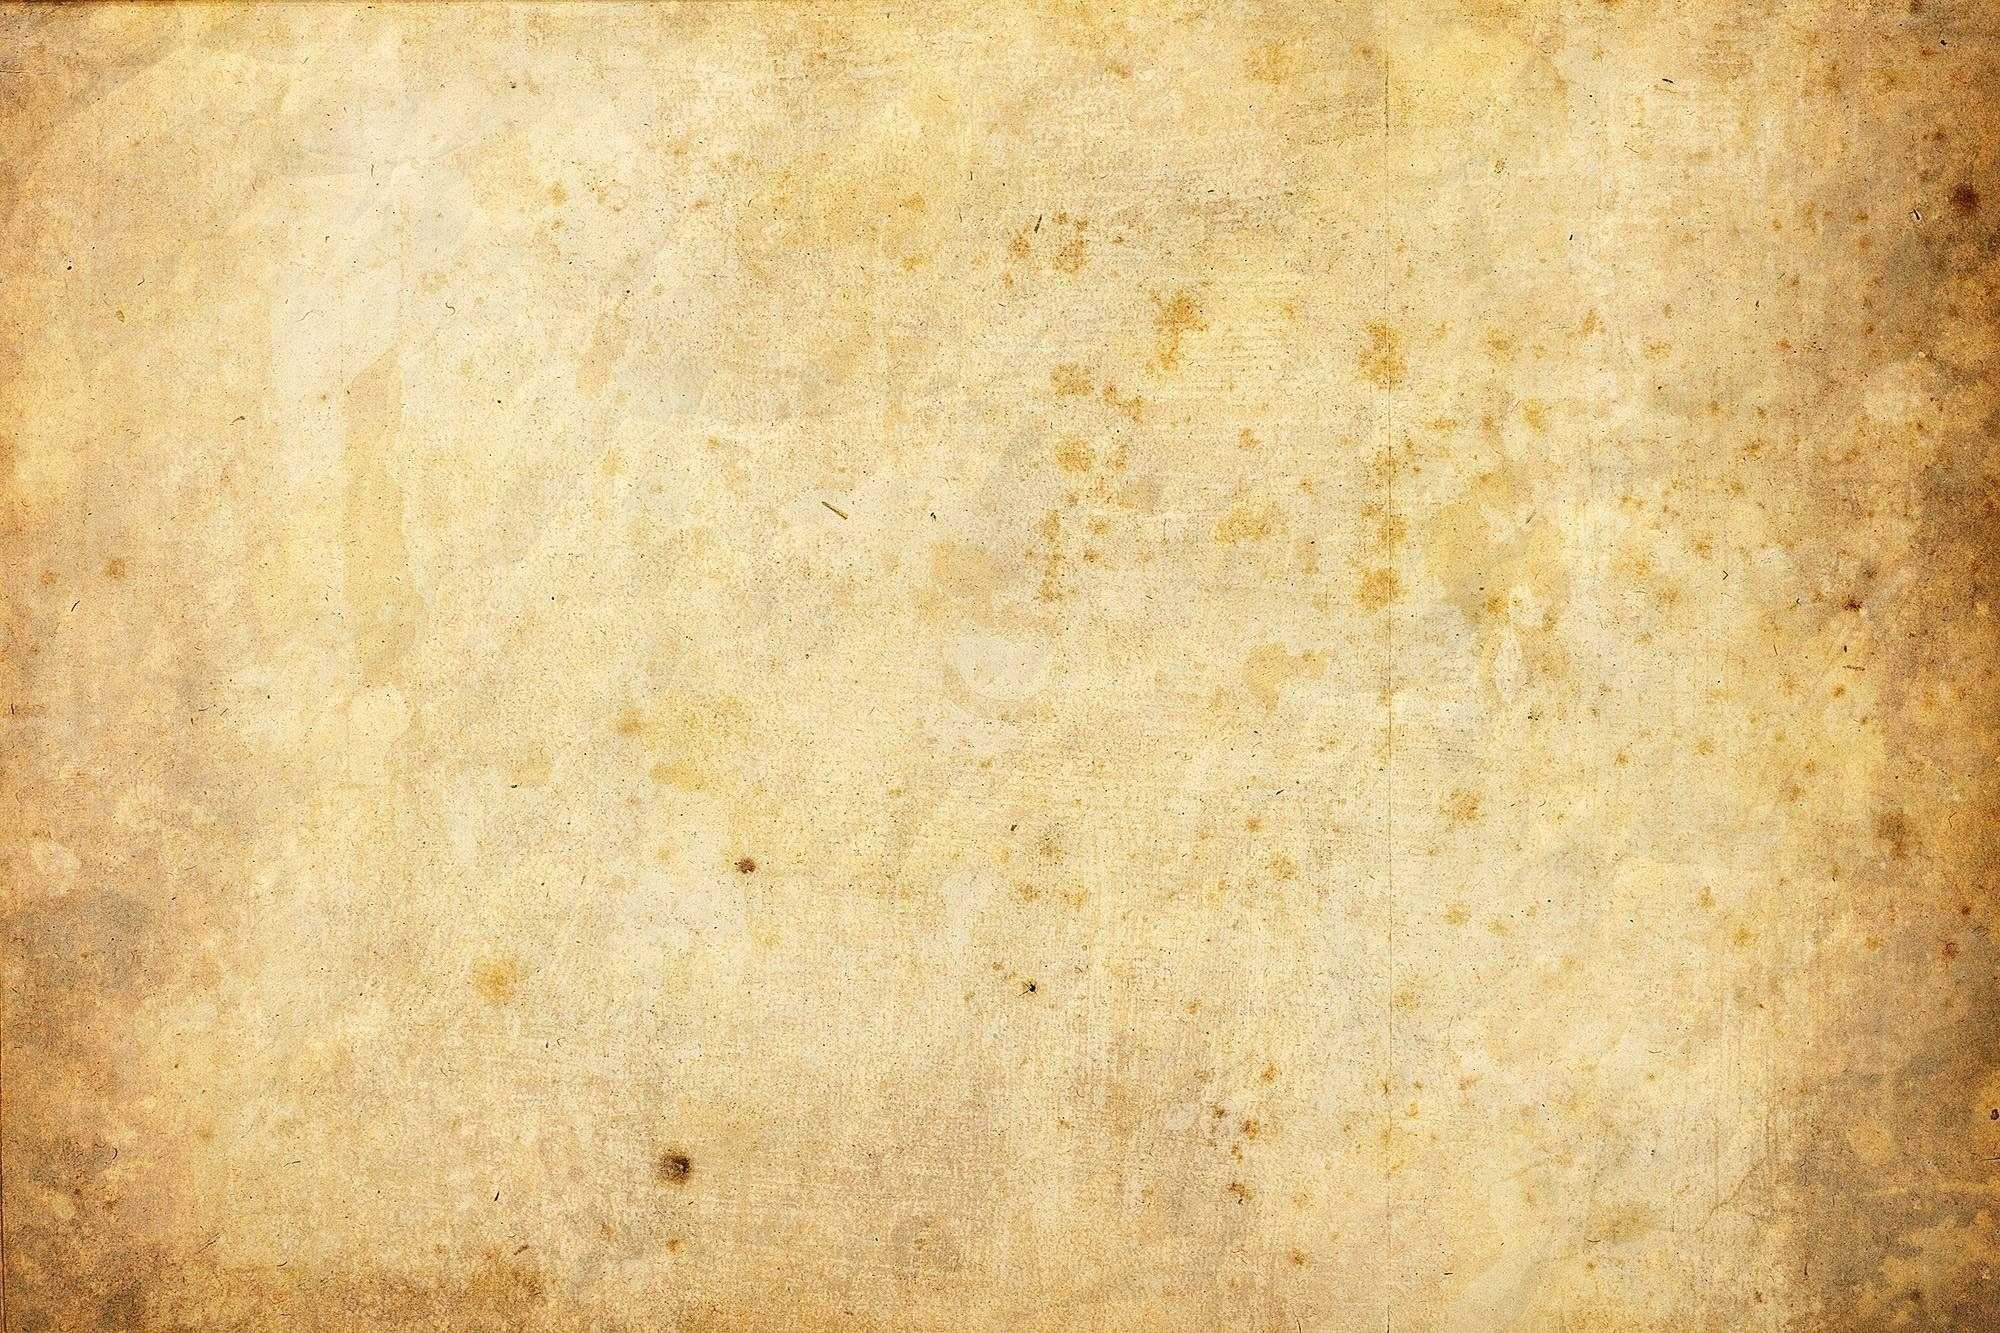 Blank Old Newspaper Background | Writings And Essays Corner for Old Blank Newspaper Template